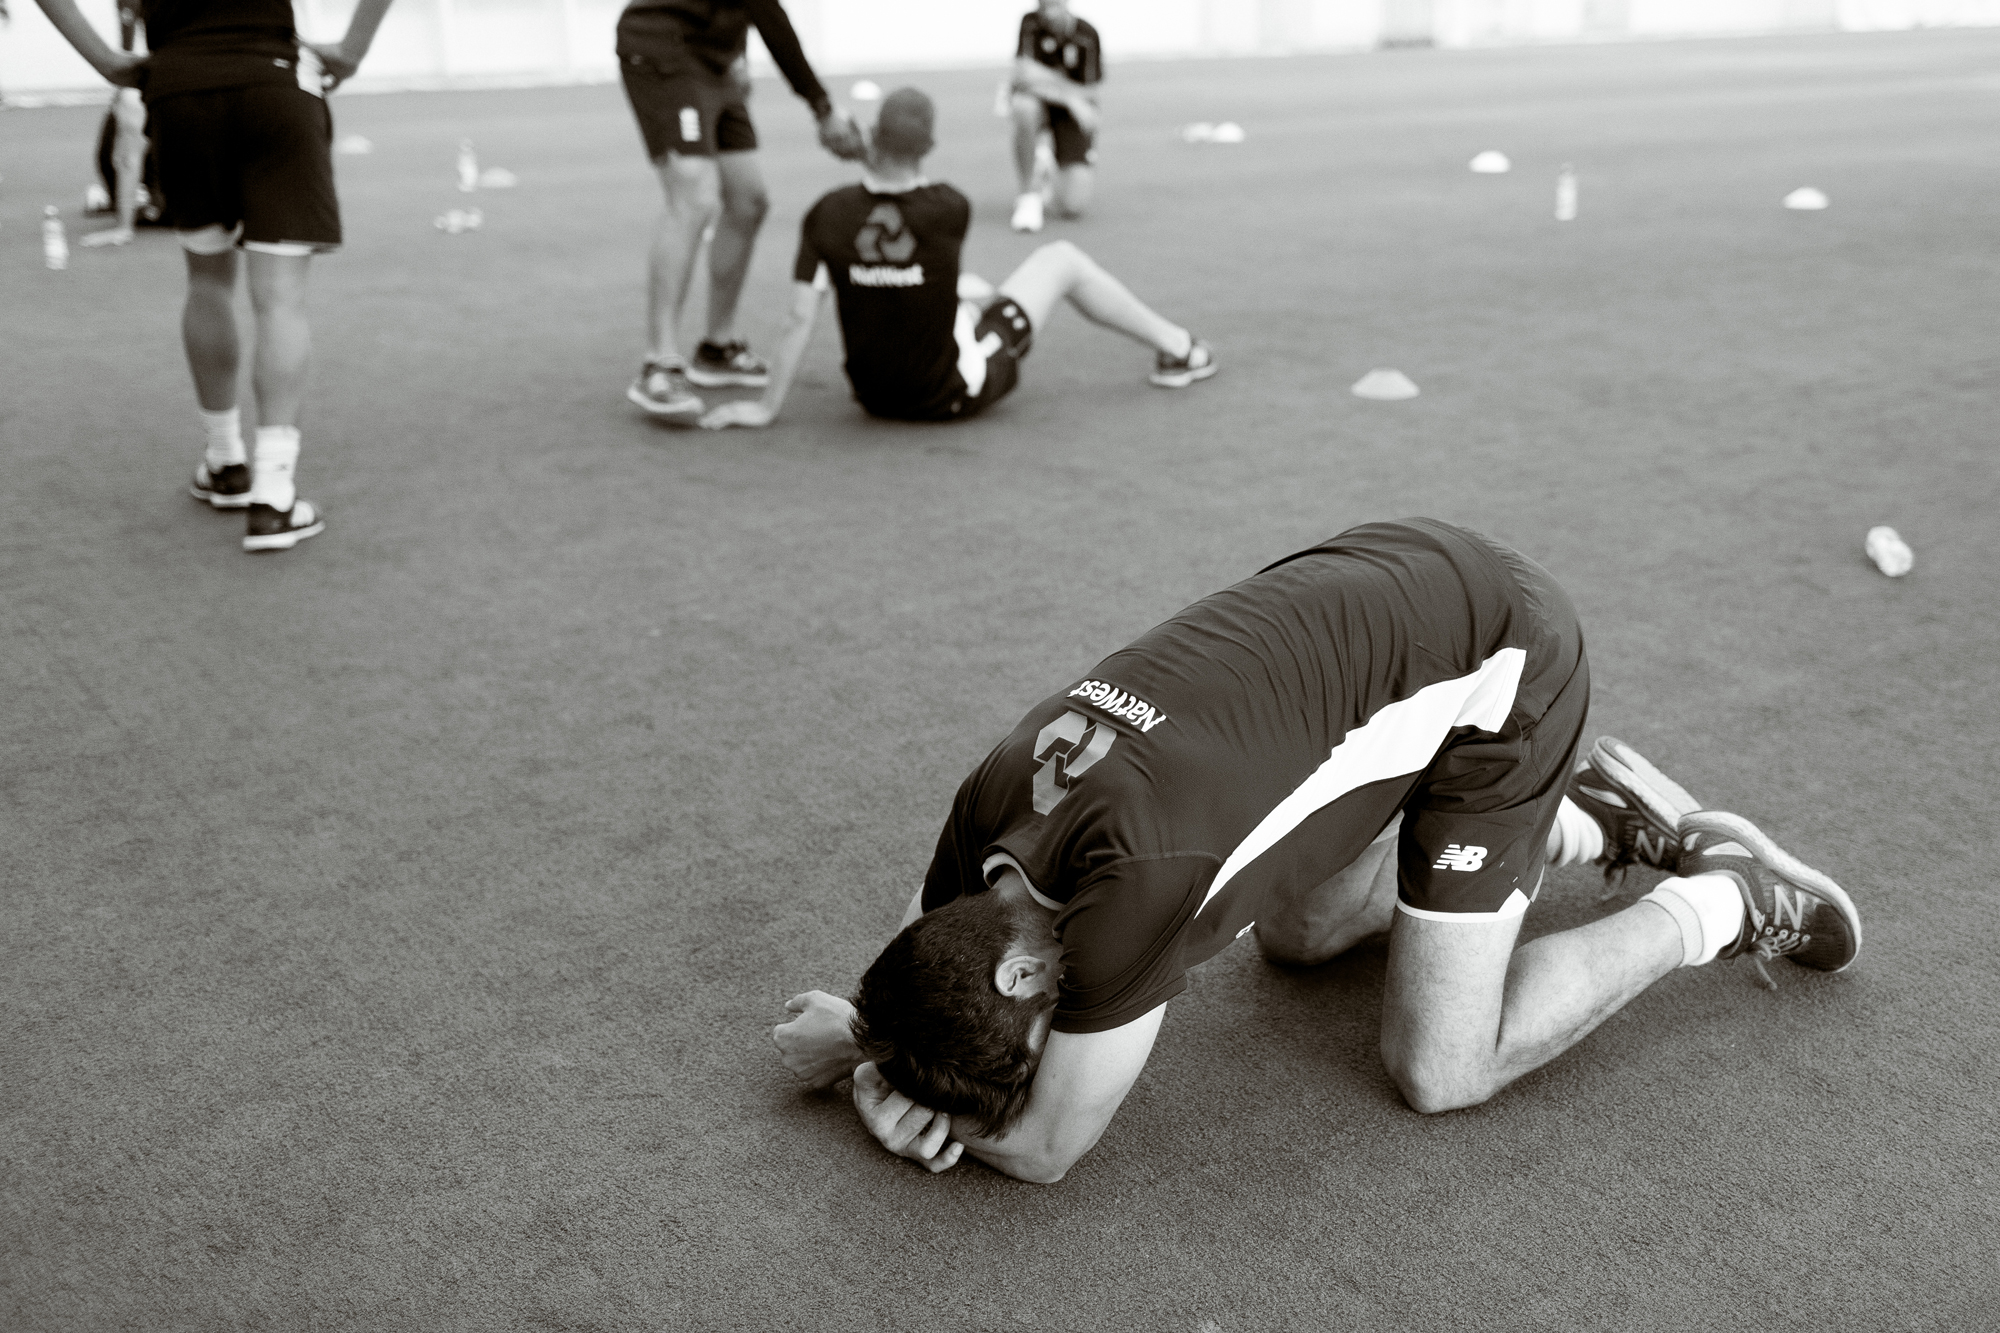 Each year the England Mens Cricket team have a fitness session - a yoyo test - to check their fitness. Its fairly brutal, and they get pushed all the way until they cannot go any more.